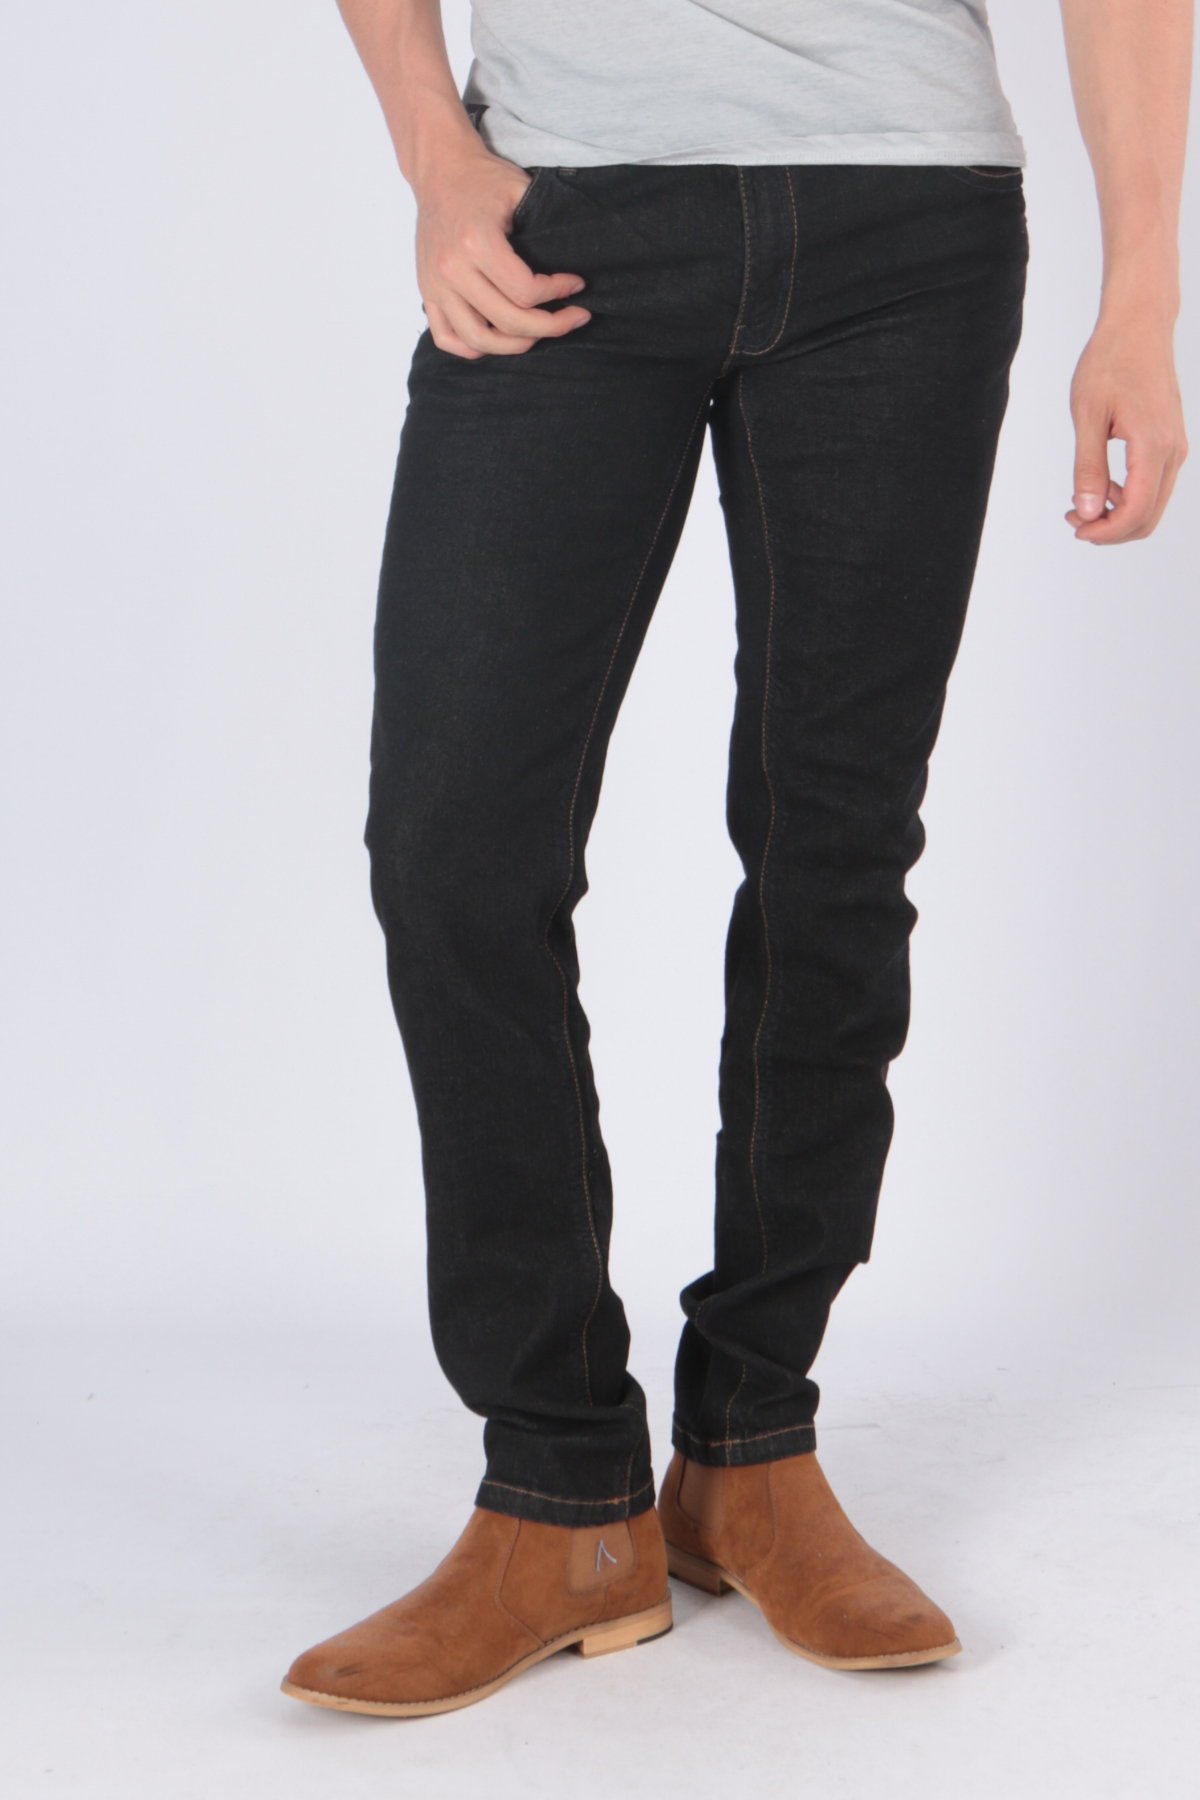 Jeans Homme Noir Hopenlife JYOTI 1 (NOIR) #c eFashion Paris